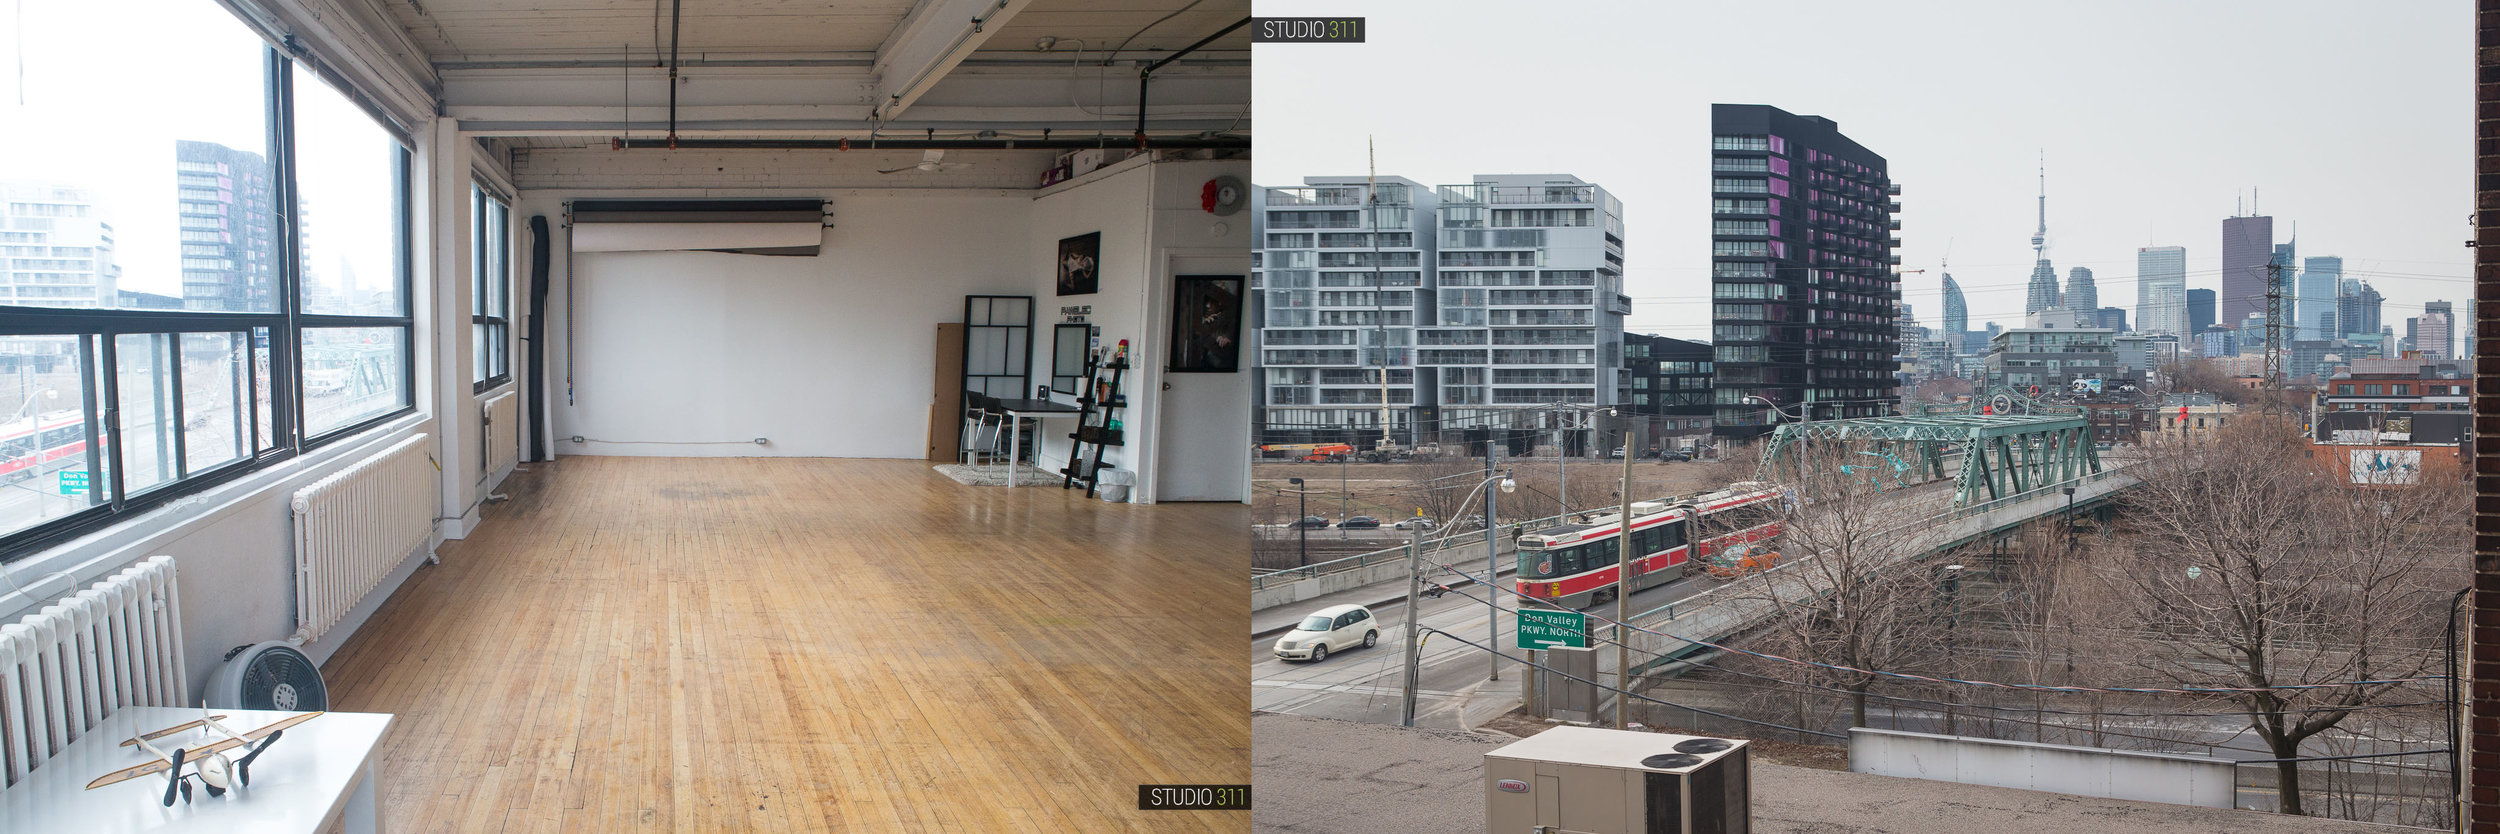 Nothing beats this hard-loft look, south-facing windows, and views of downtown Toronto from Studio 311!